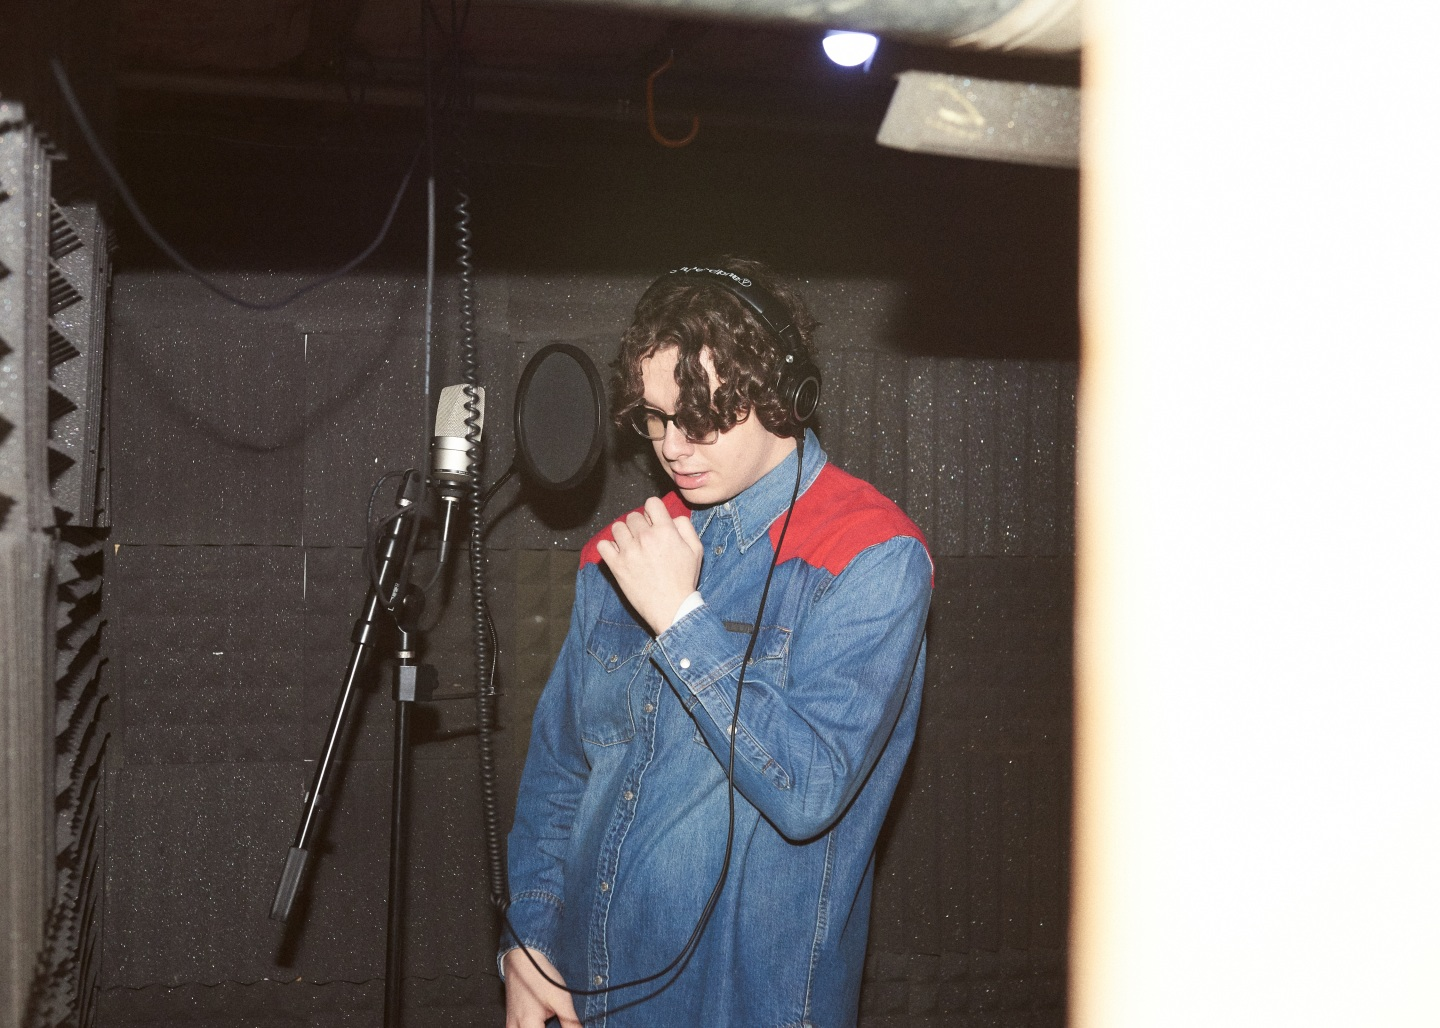 Jack Harlow Stays True to His Roots